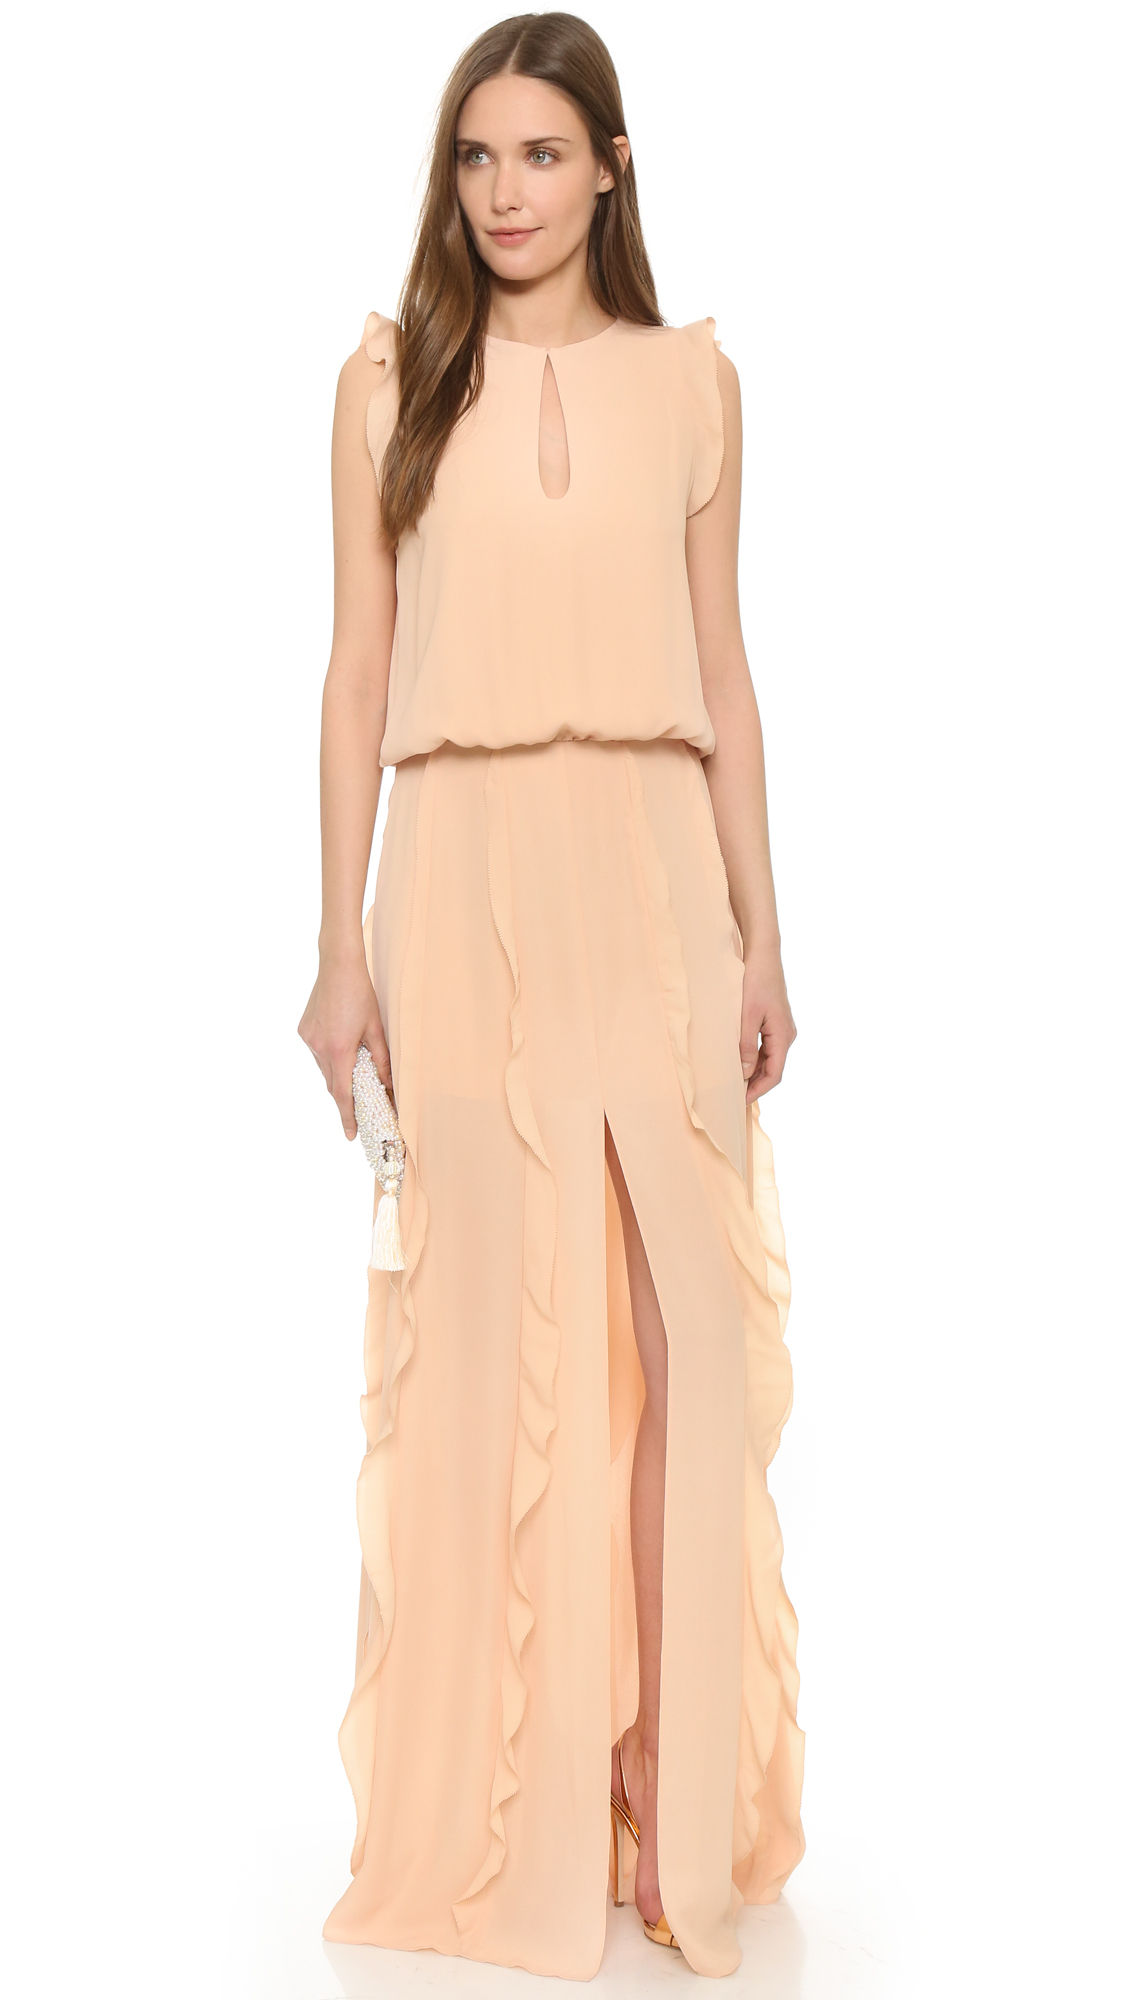 Alexis Frances Ruffled Maxi Dress in Pink | Lyst